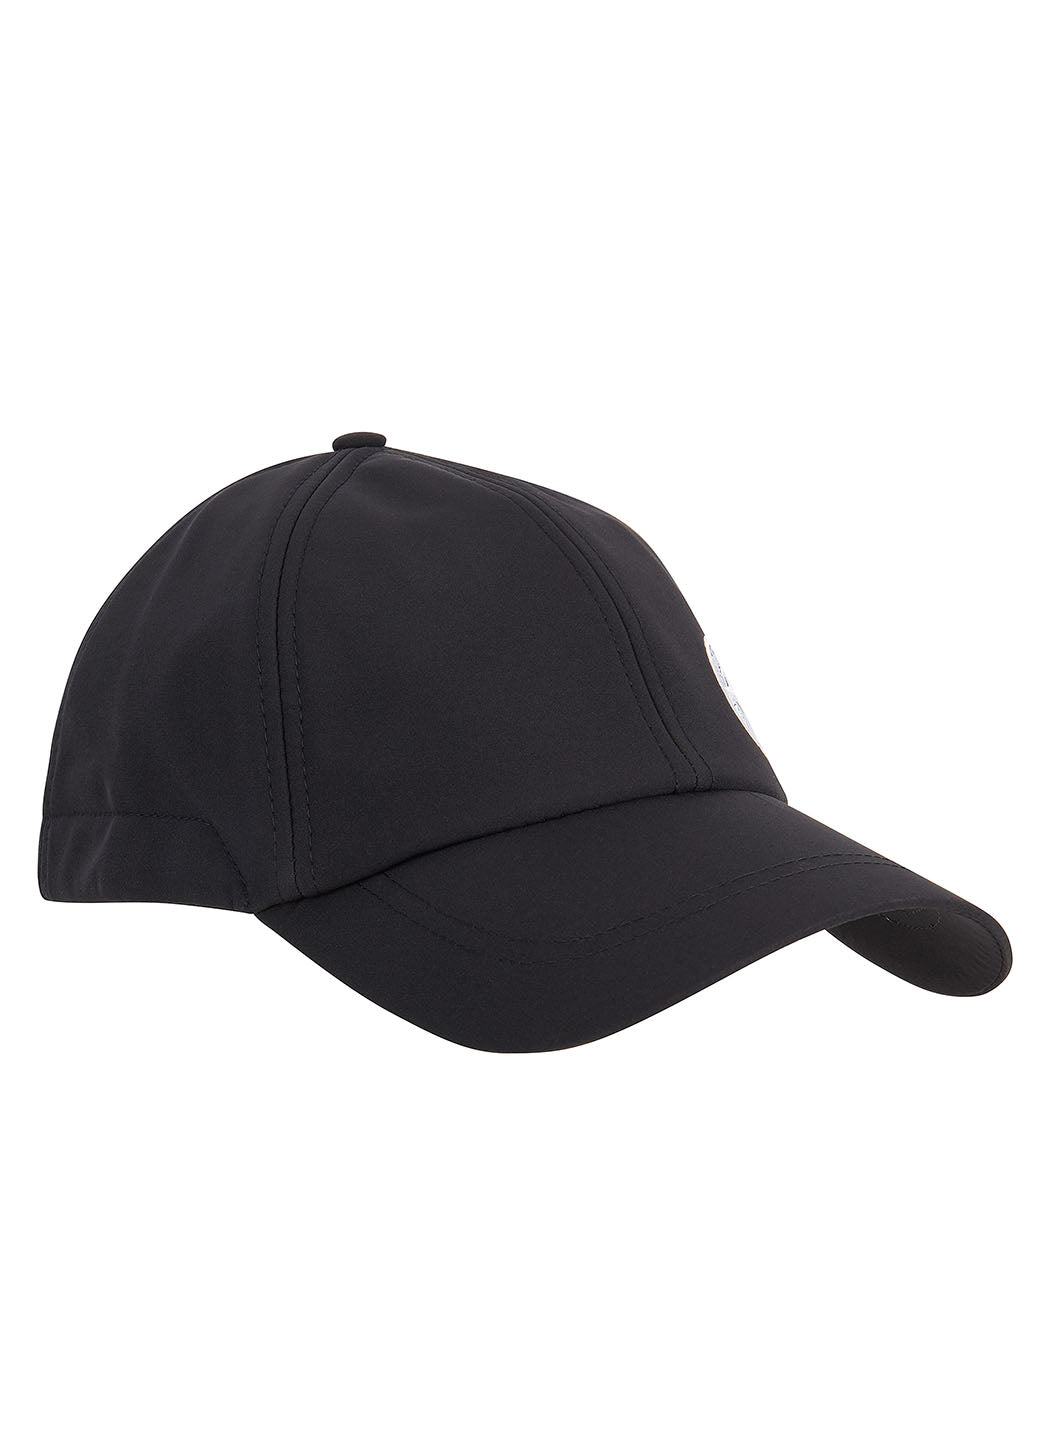 99222 SOFT SHELL-R Cap in Black